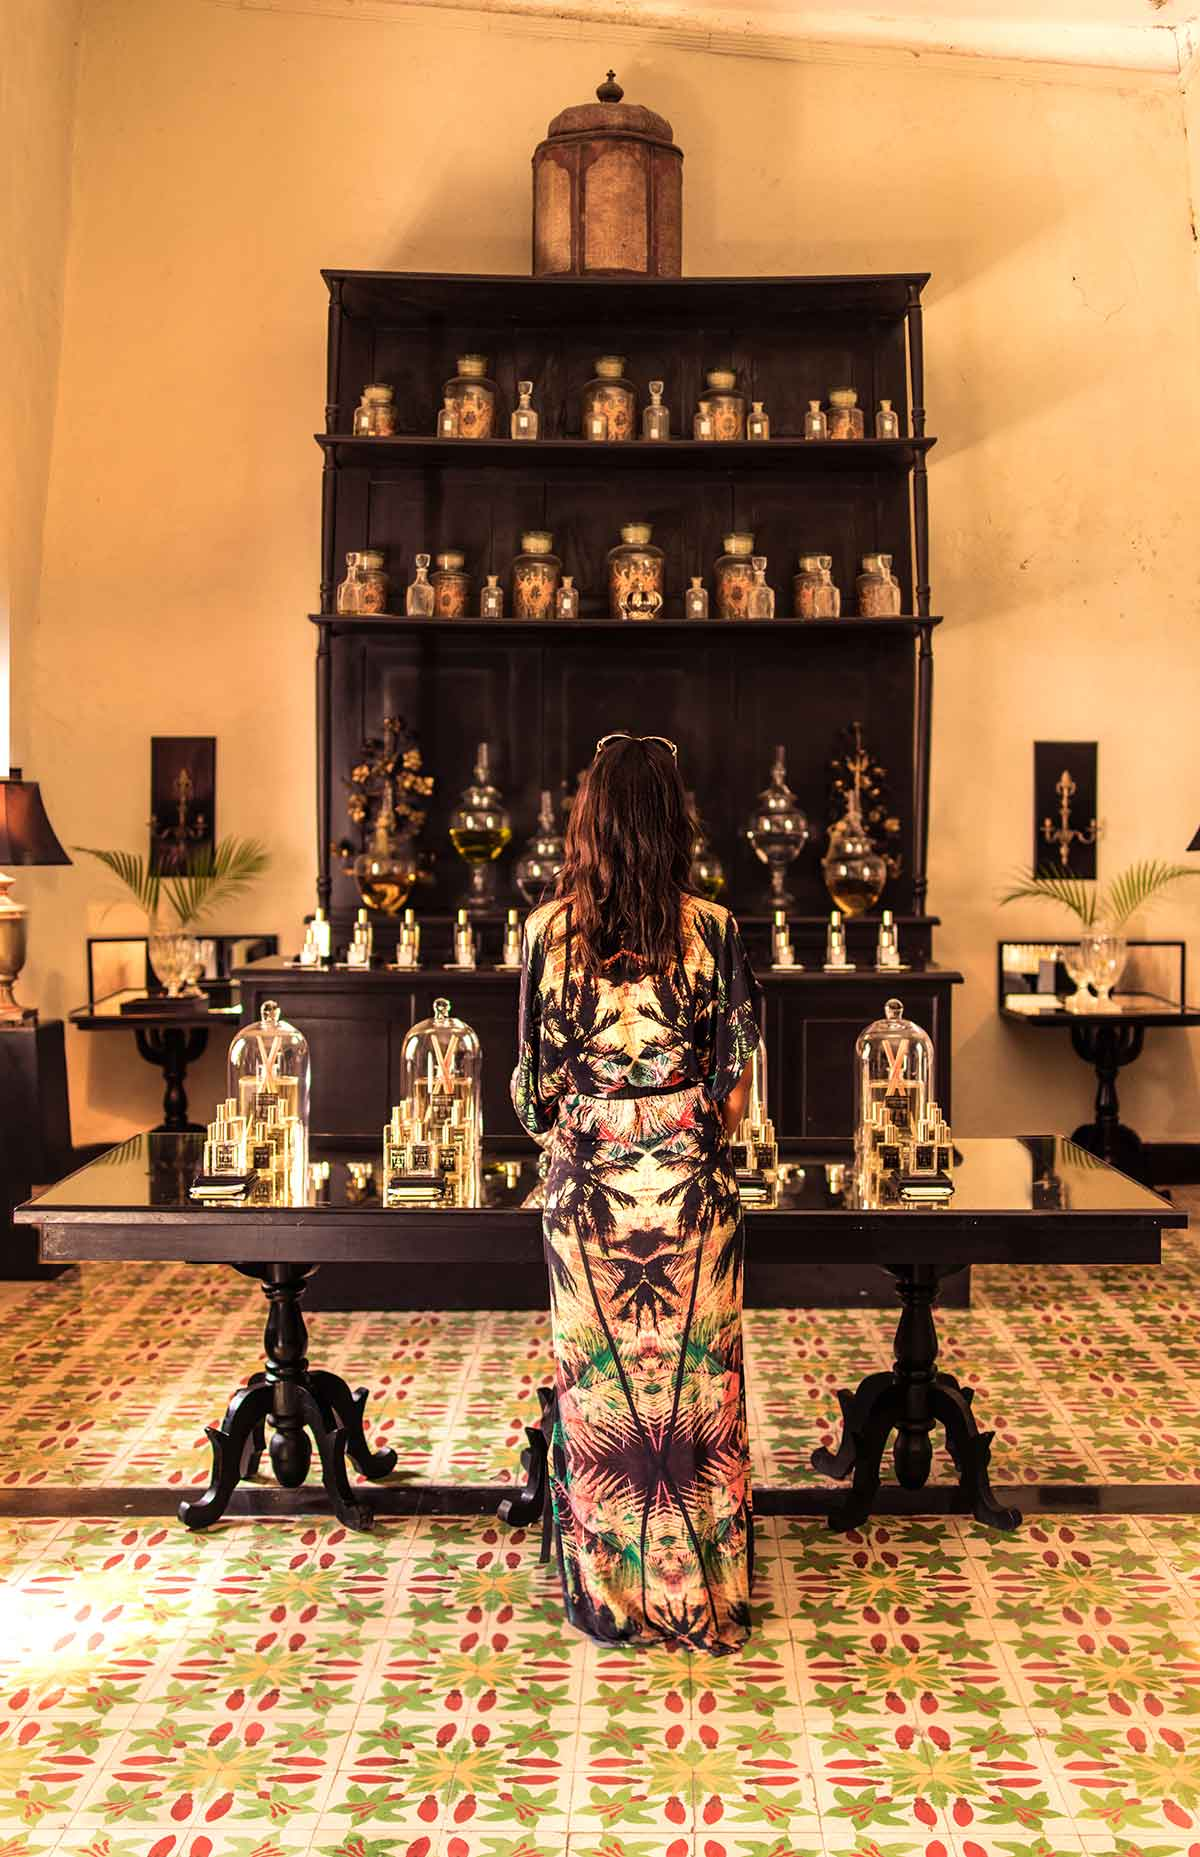 20 EPIC Valladolid Instagram spots for travelling Mexico. A woman stands with her back to camera in Coqui Coqui Perfume shop